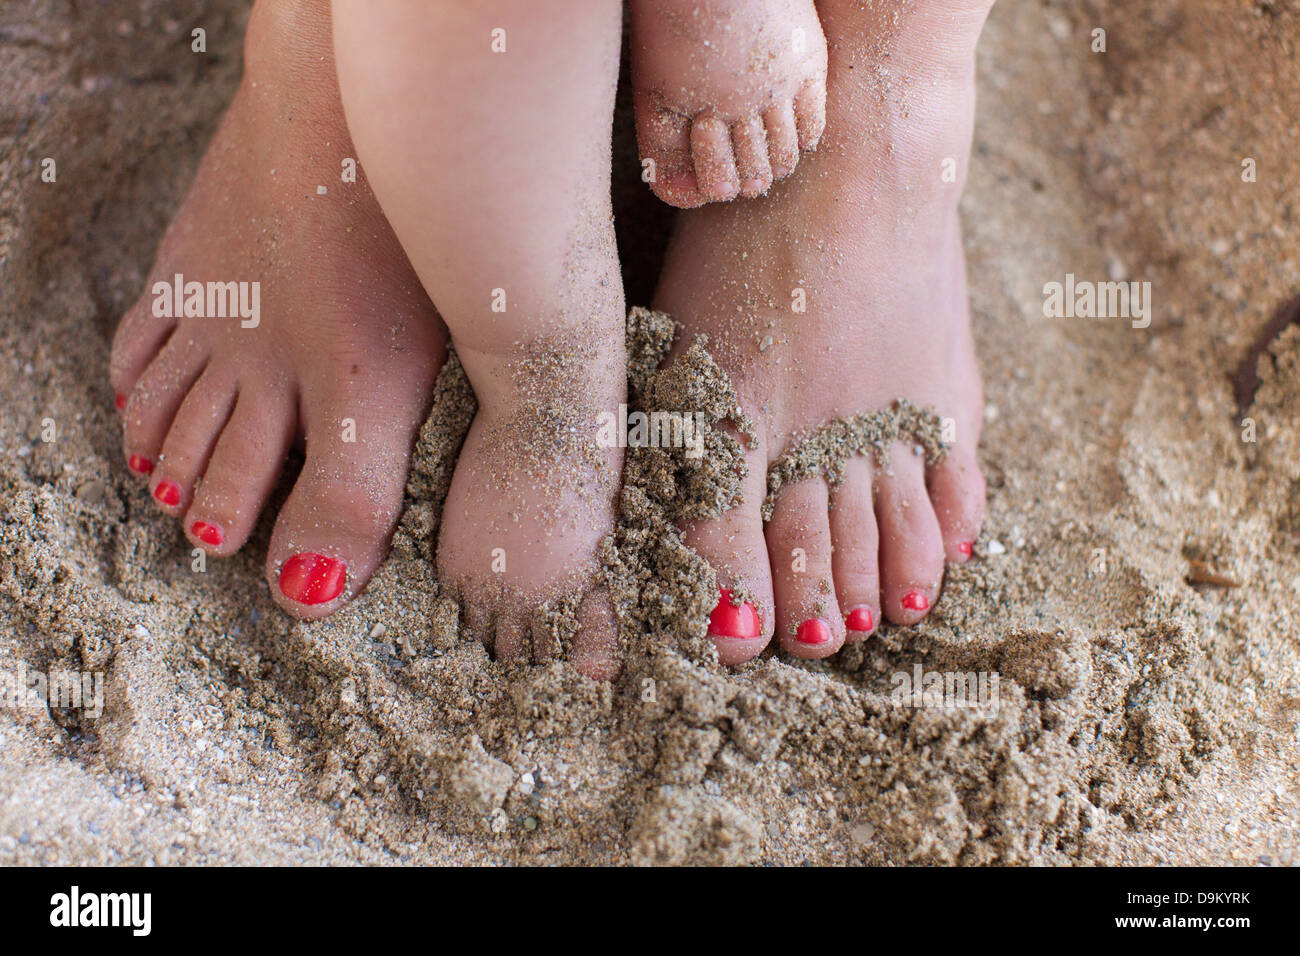 Mother with baby daughter's bare feet in sand - Stock Image